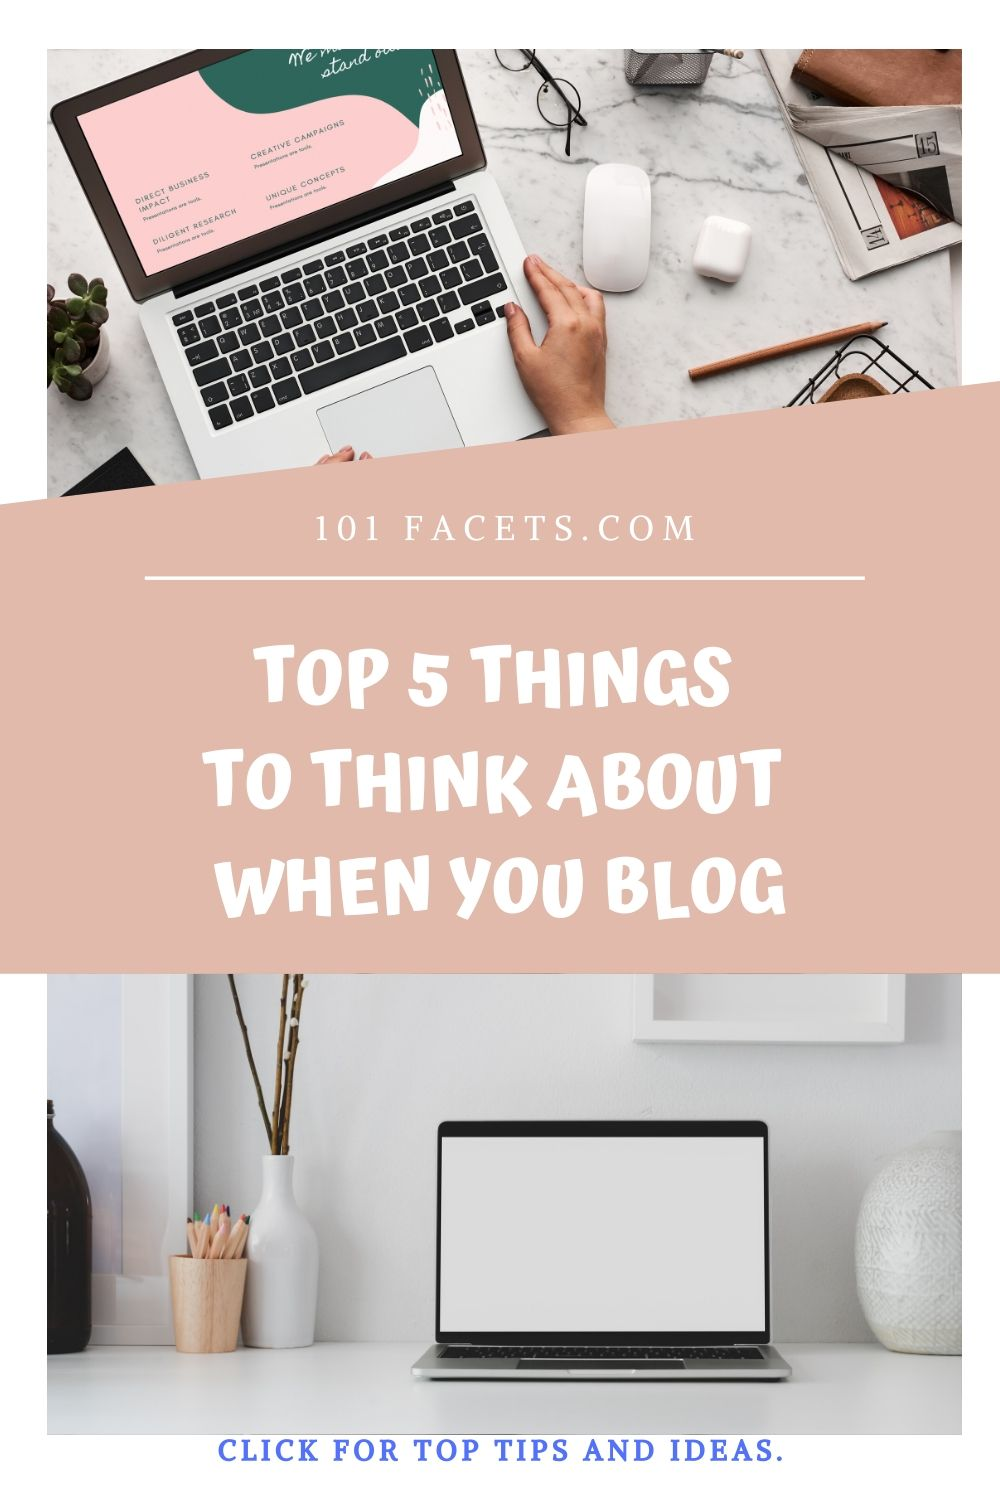 5 Things To Think About When You Blog